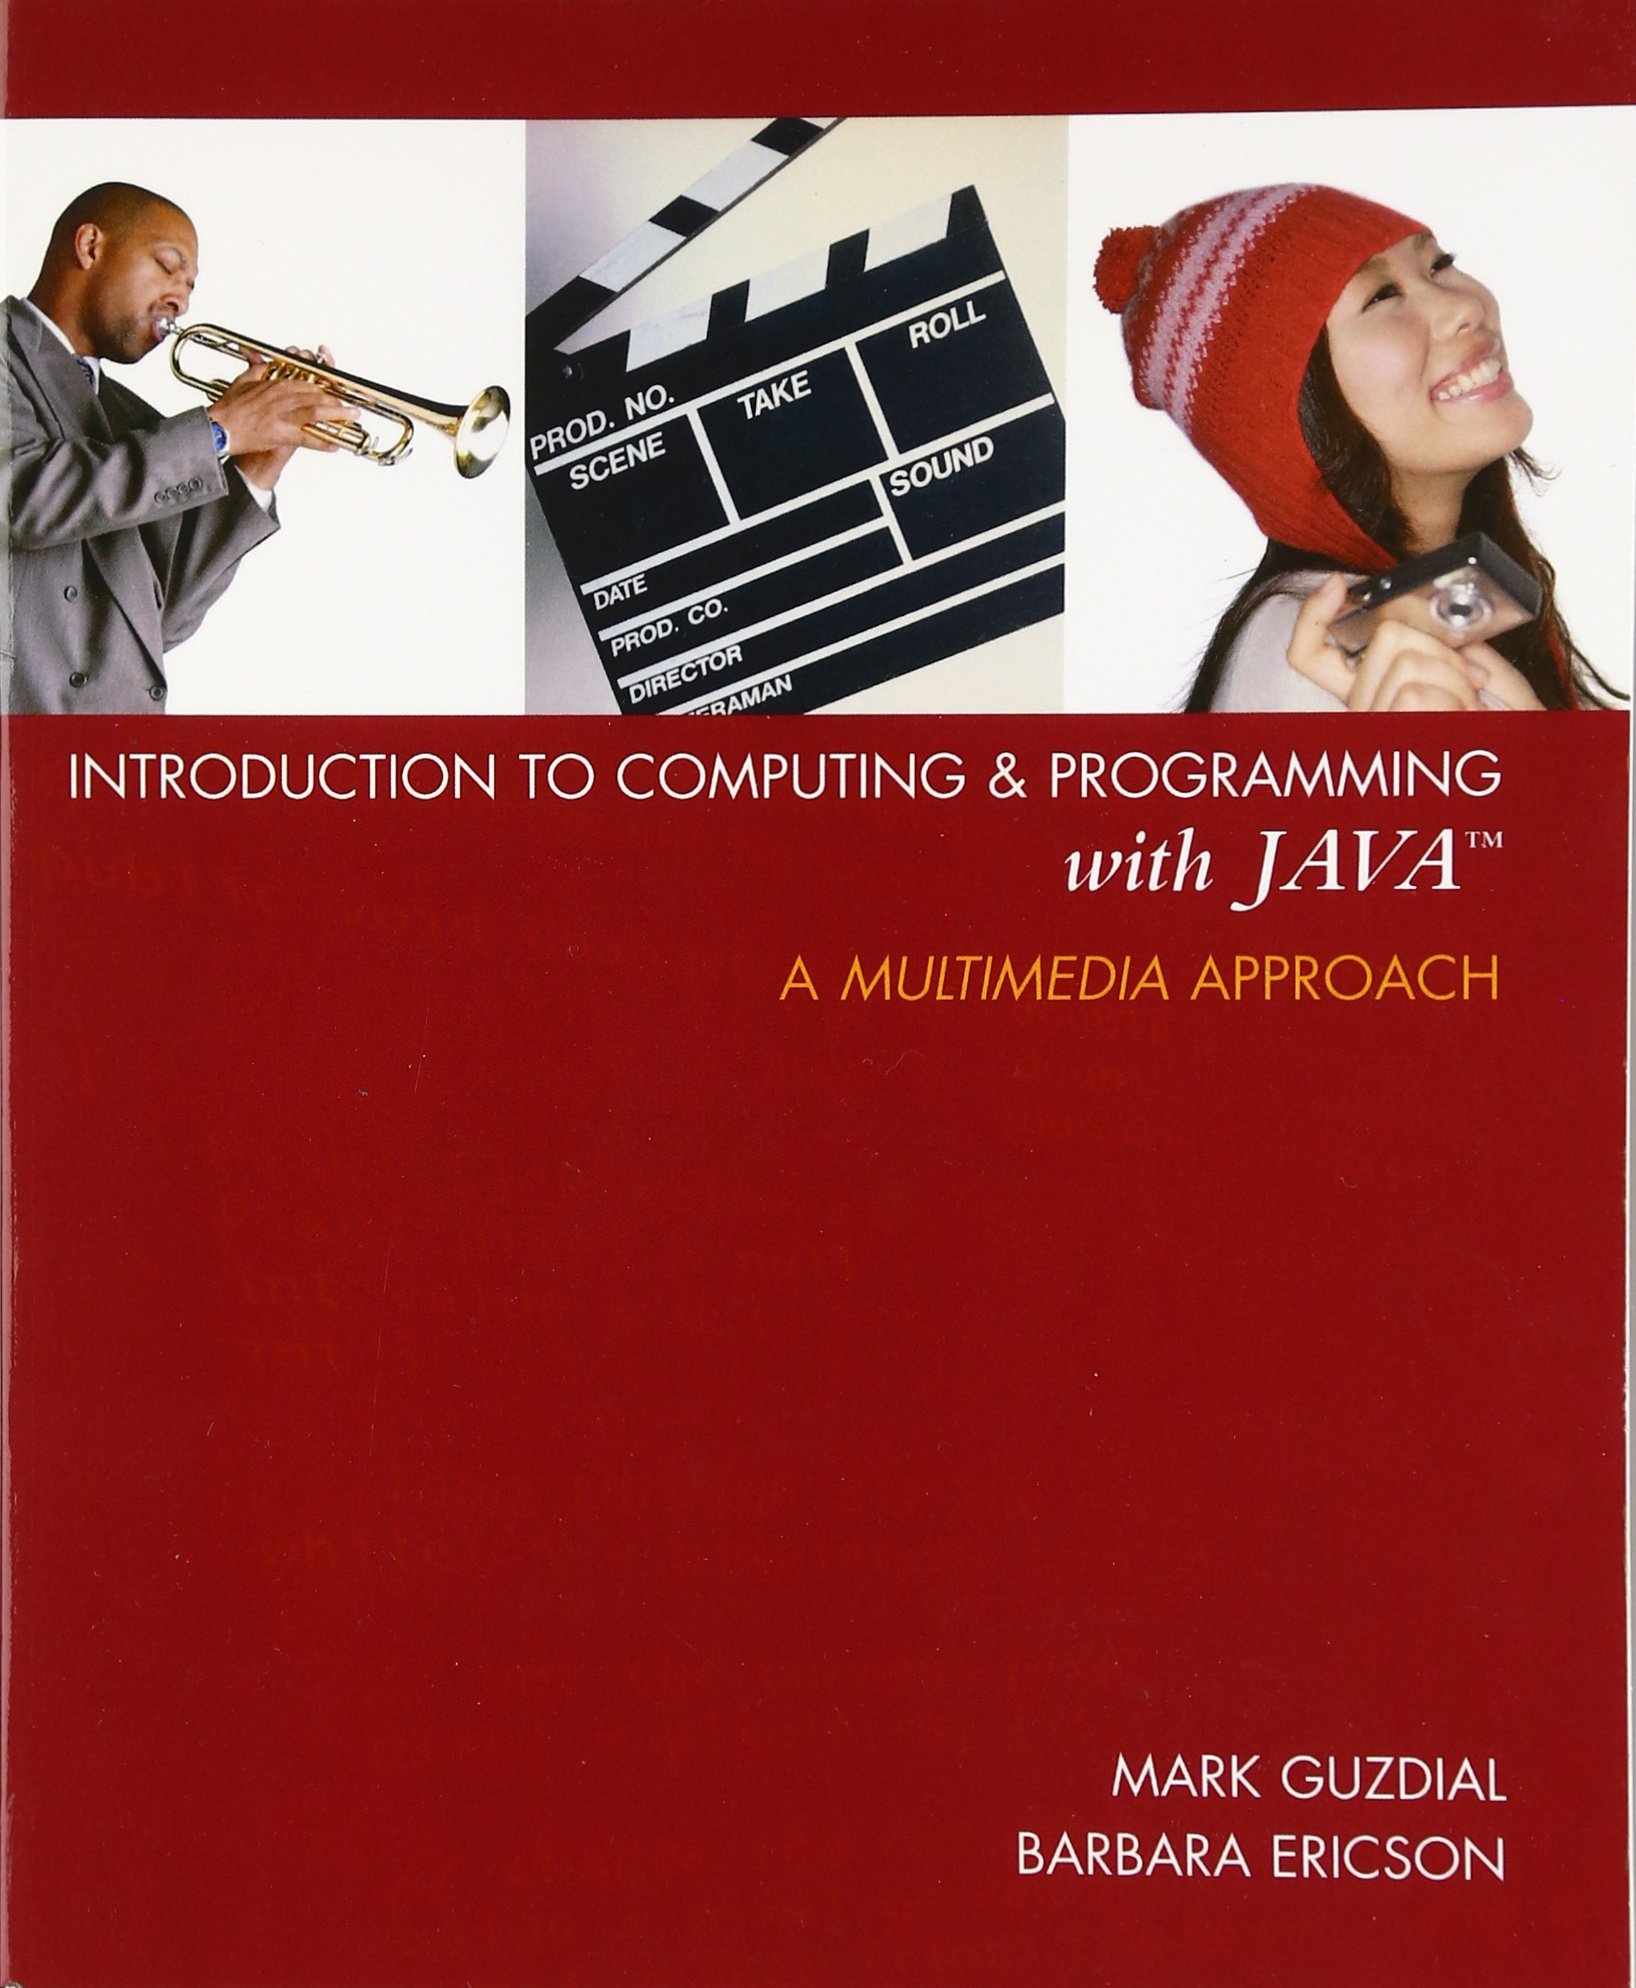 Introduction to Computing and Programming with Java: A Multimedia Approach by Guzdial, Mark/ Ericson, Barbara